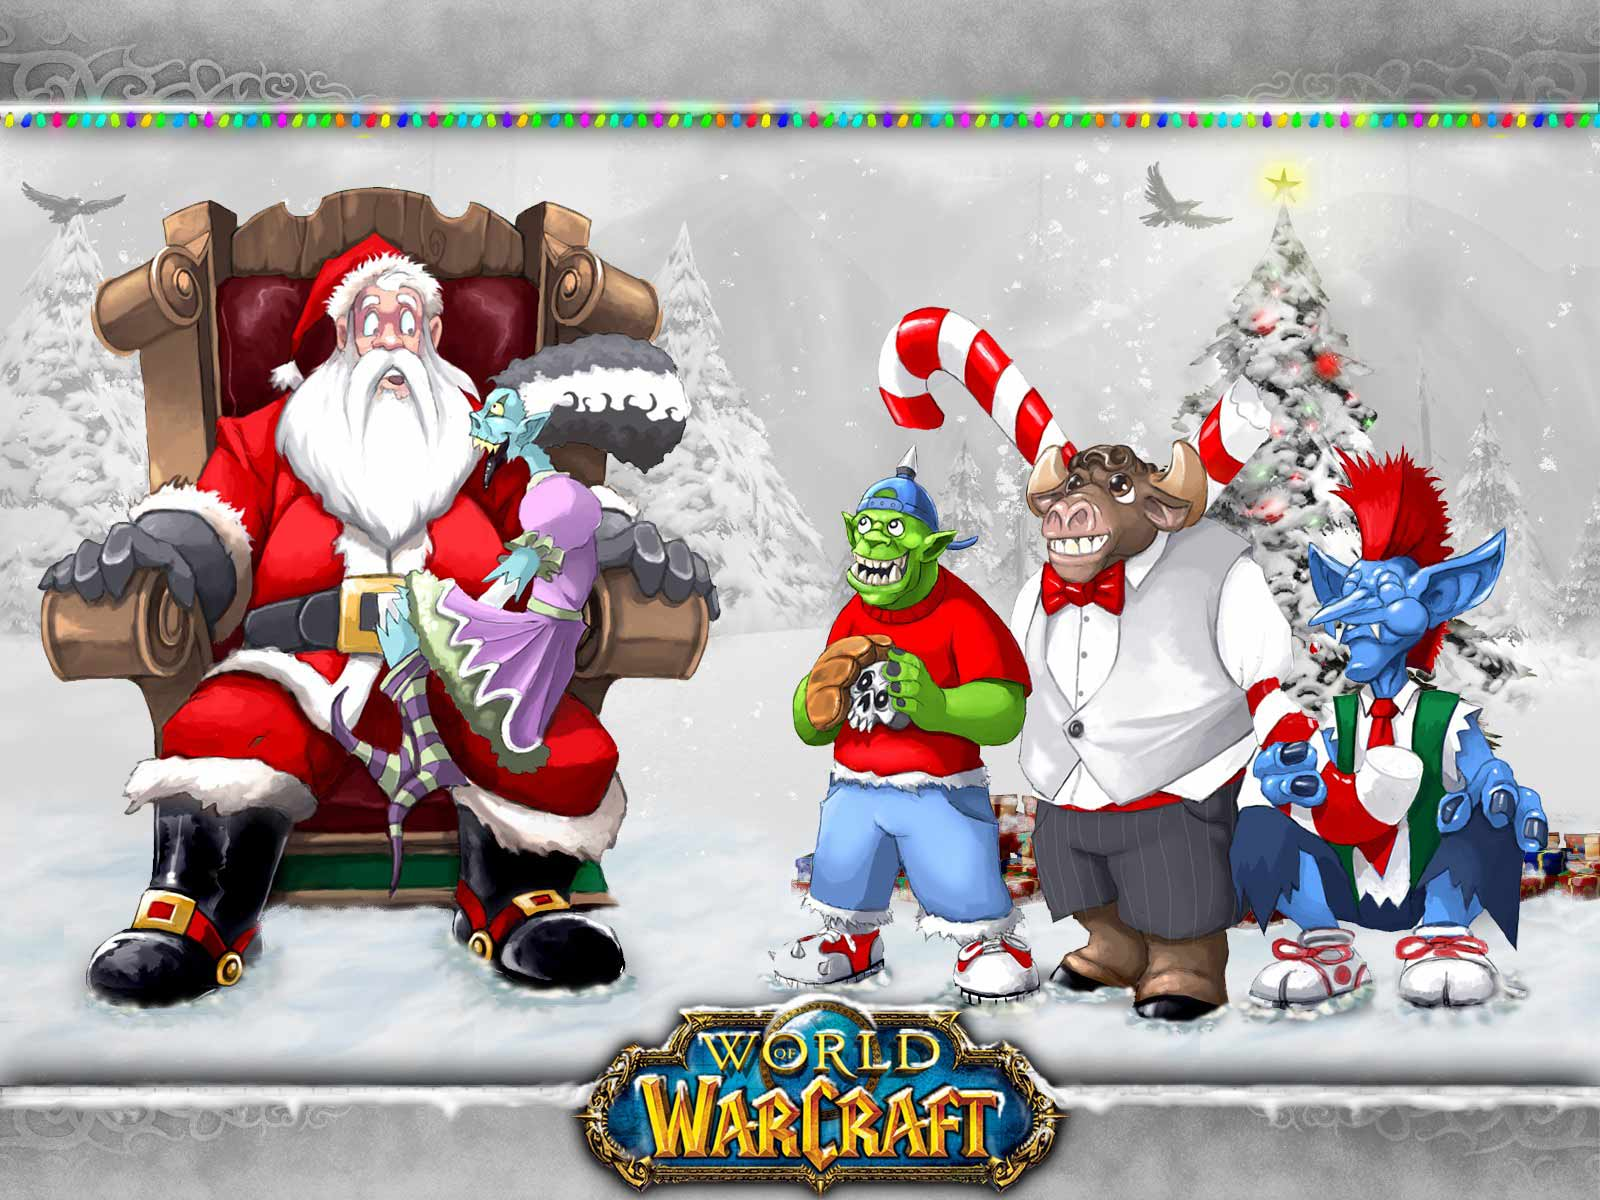 http://4.bp.blogspot.com/_nEmB3Z5F5EM/S6wiCtsb2GI/AAAAAAAAH0o/Y4t3cqkXVCc/s1600/Happy_New_Year_Of_World_Warcraft.jpg